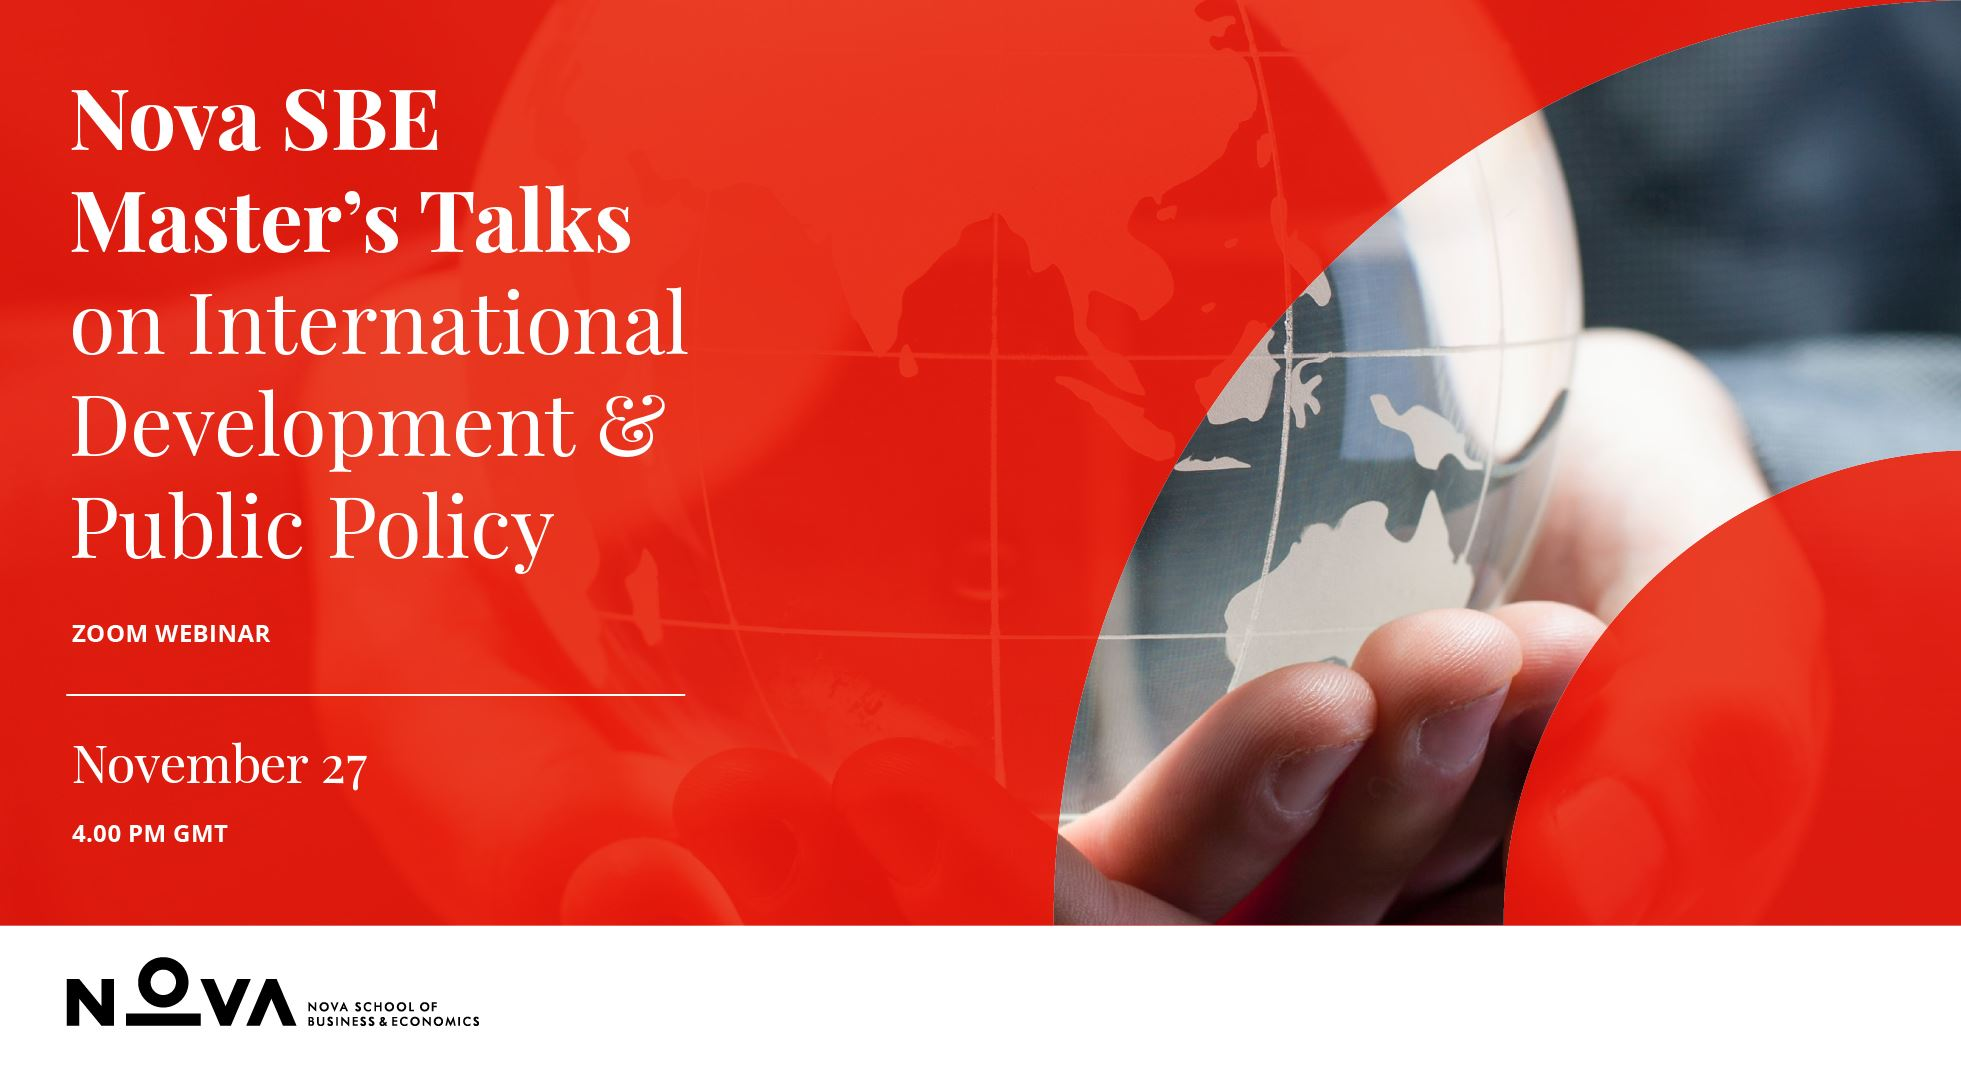 Master's Talks on International Development and Public Policy